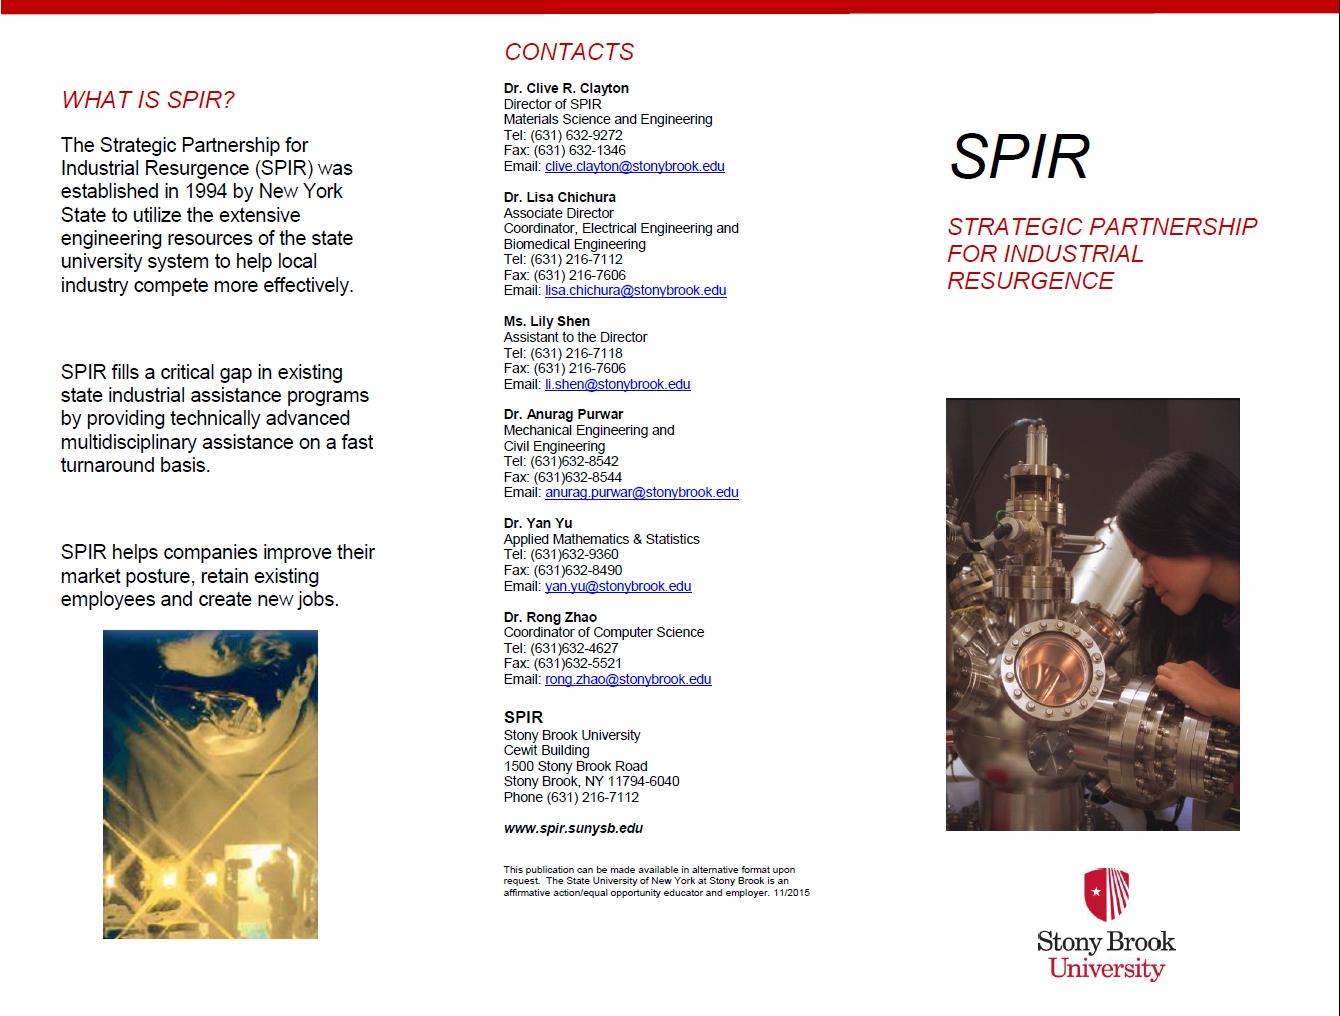 Download Our SPIR Brochure